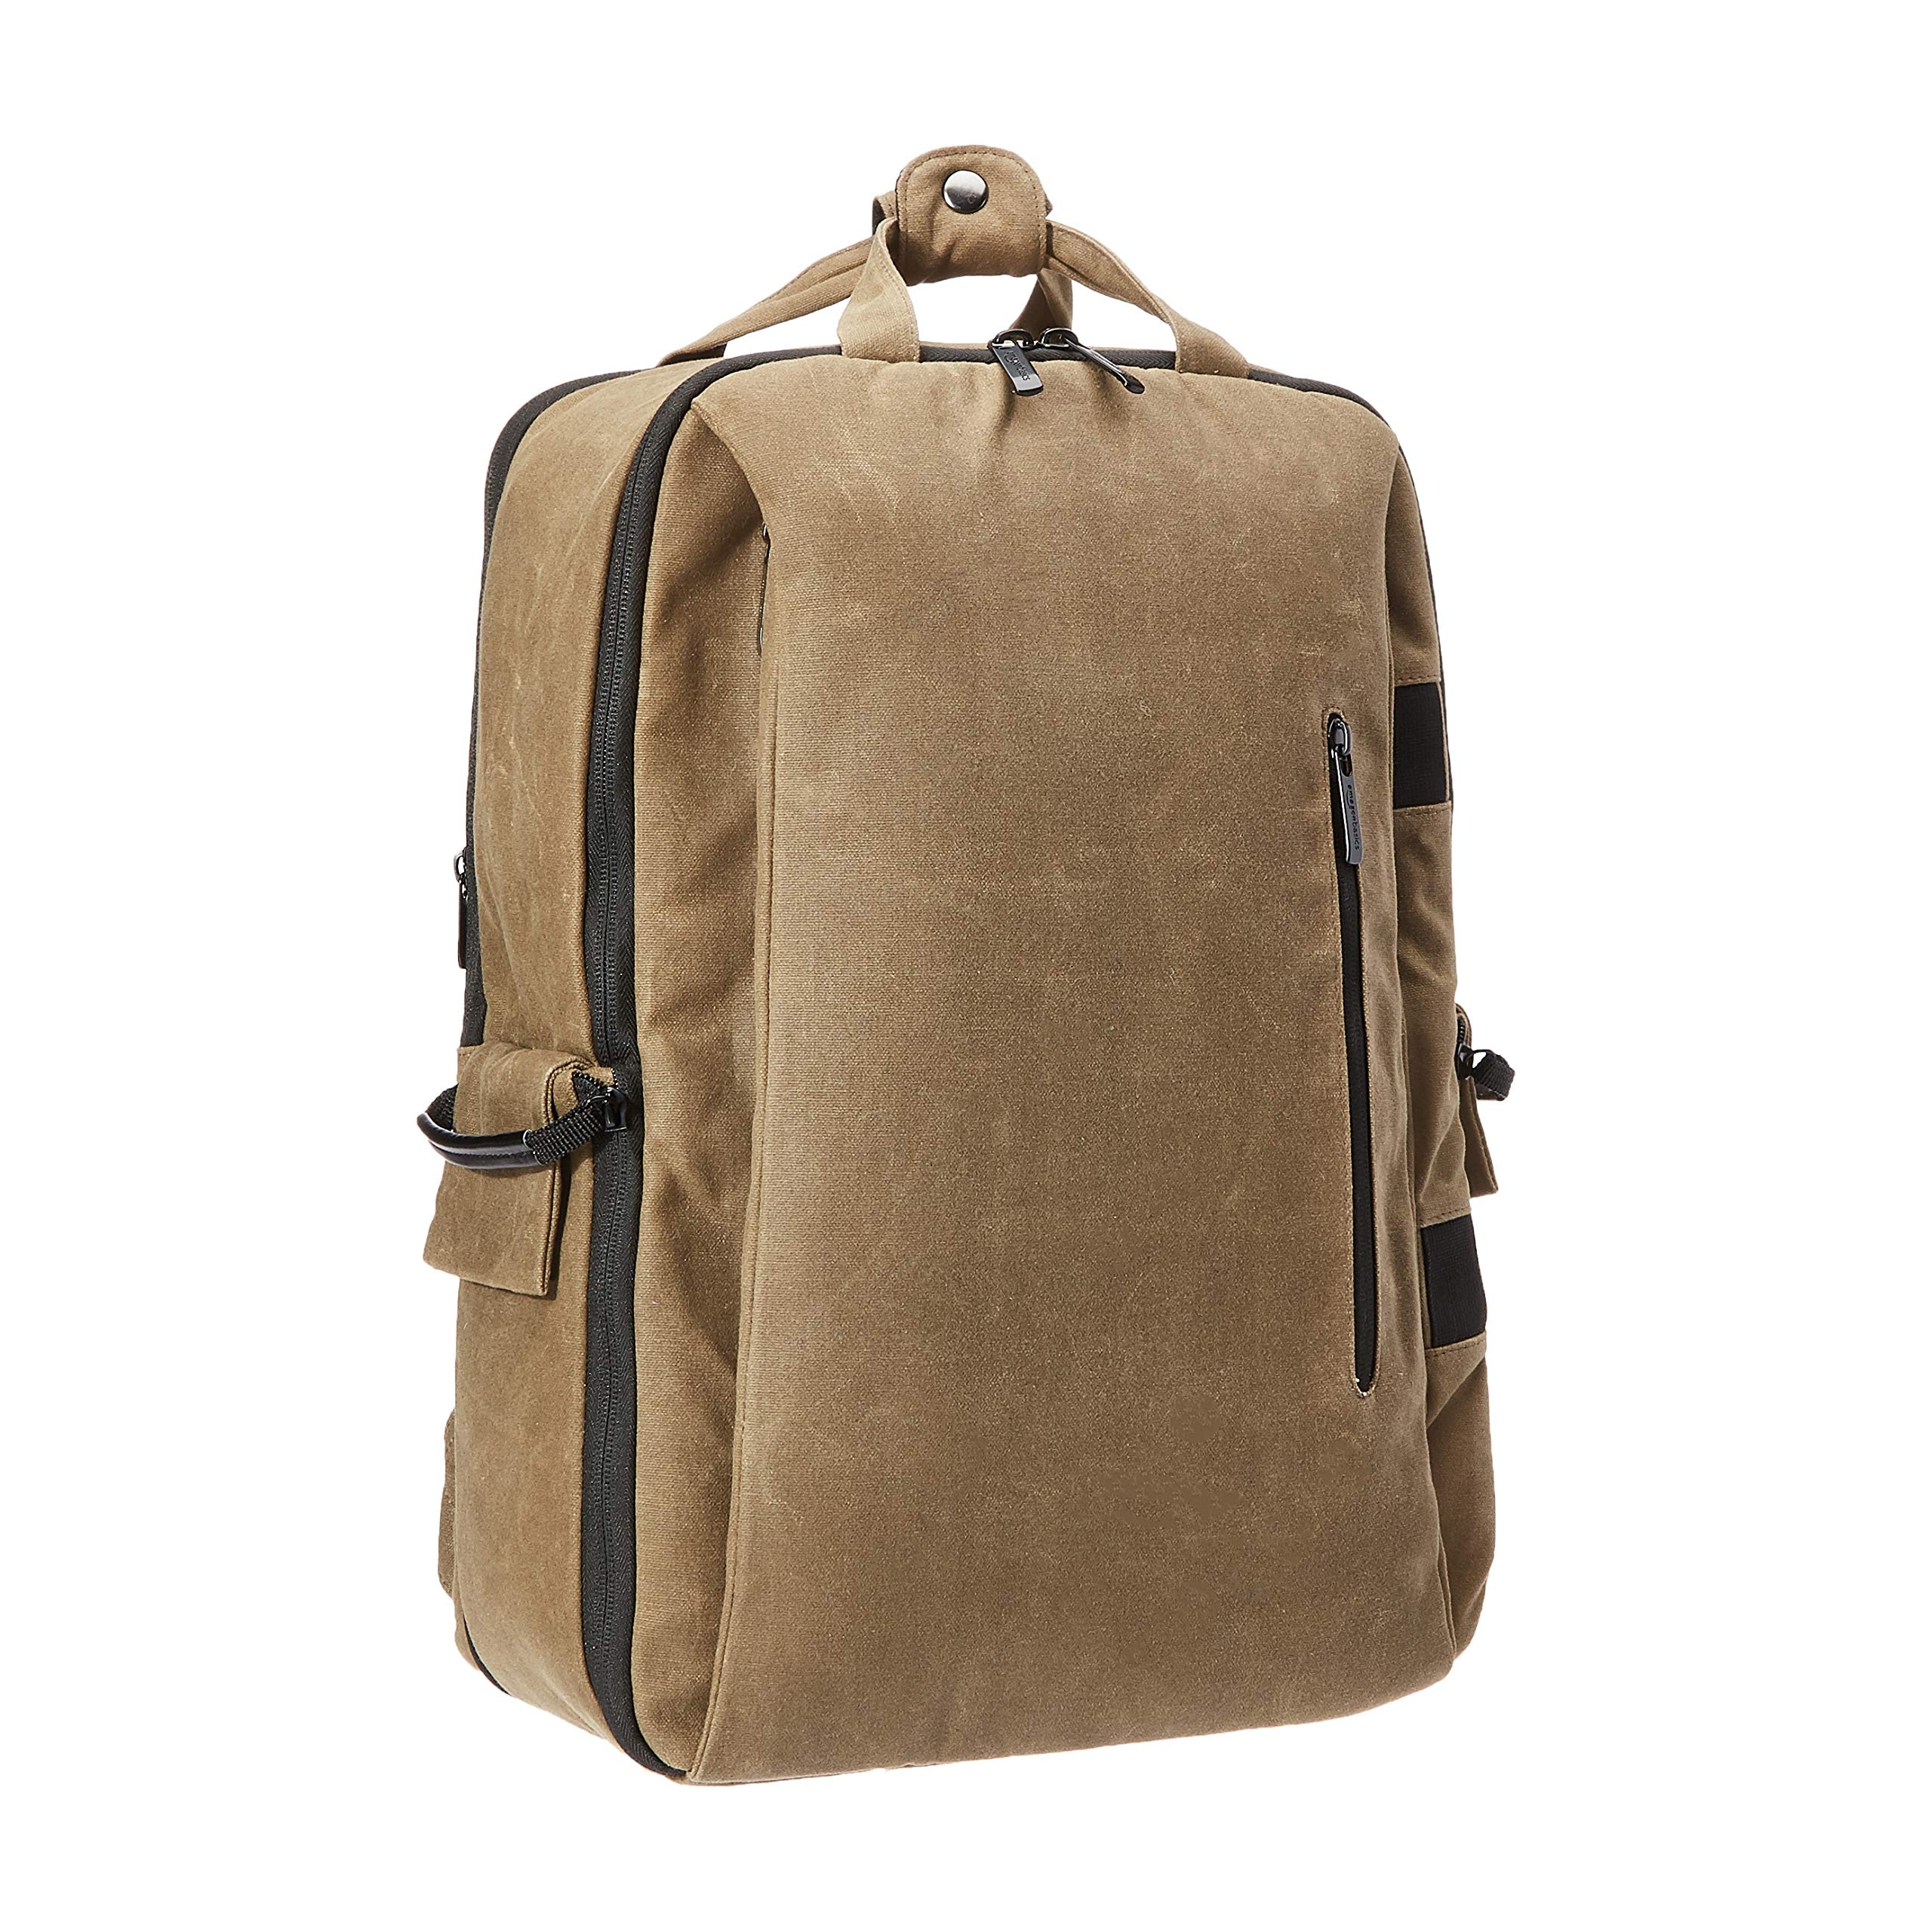 Amazon Basics Vintage Camera Backpack for Pro DSLR and Laptop- Vintage Wax Canvas - Brown